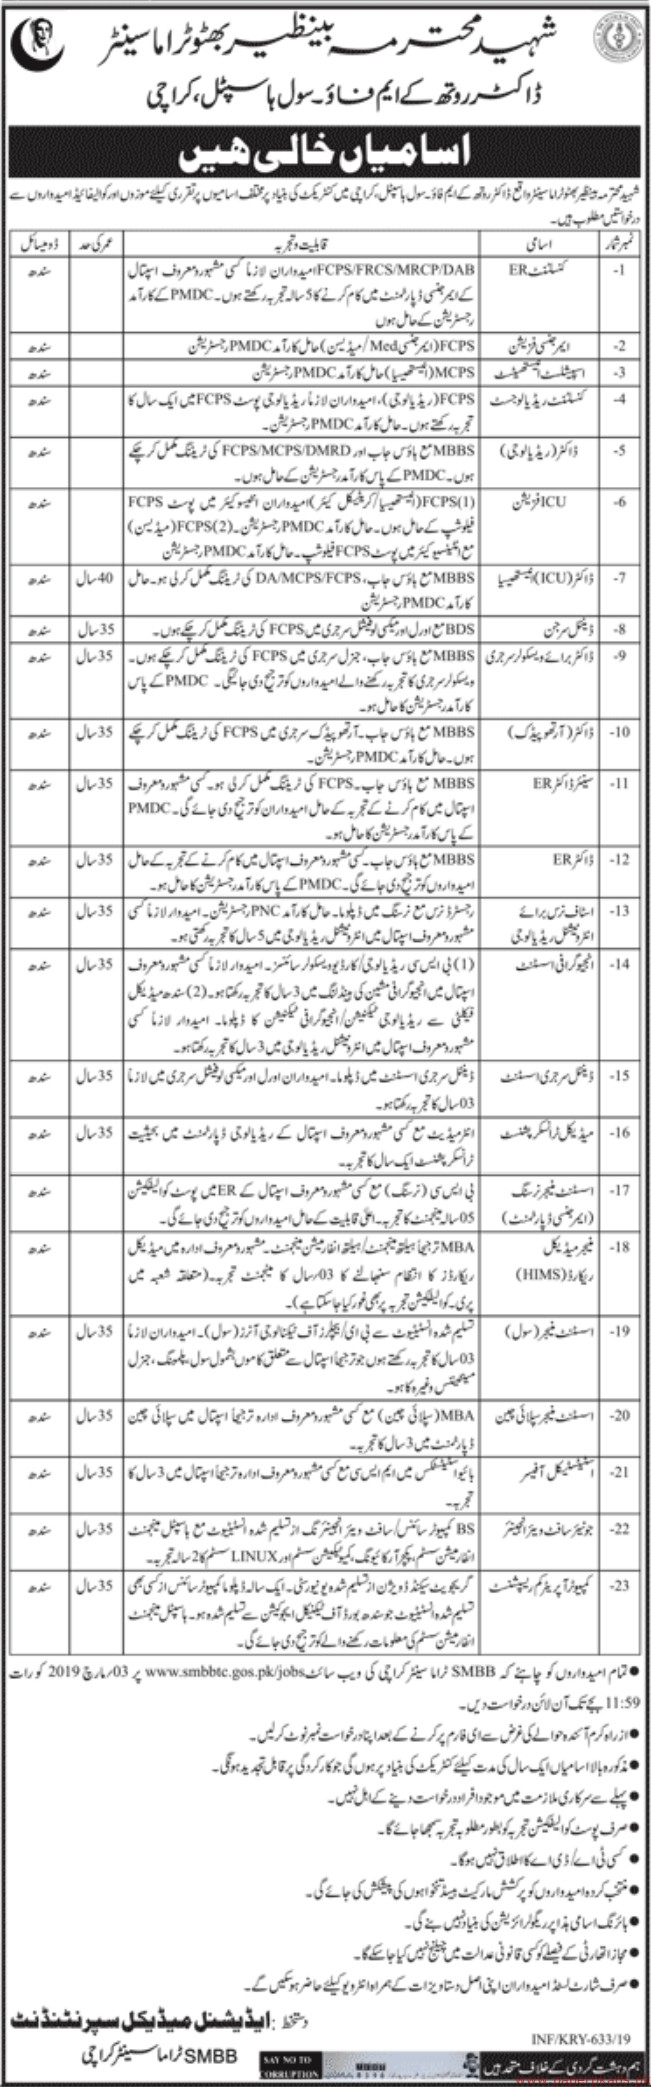 Shaheed Mohtarma Benazir Bhutto Accident Emergency & Trauma Centre Jobs 2019 Latest